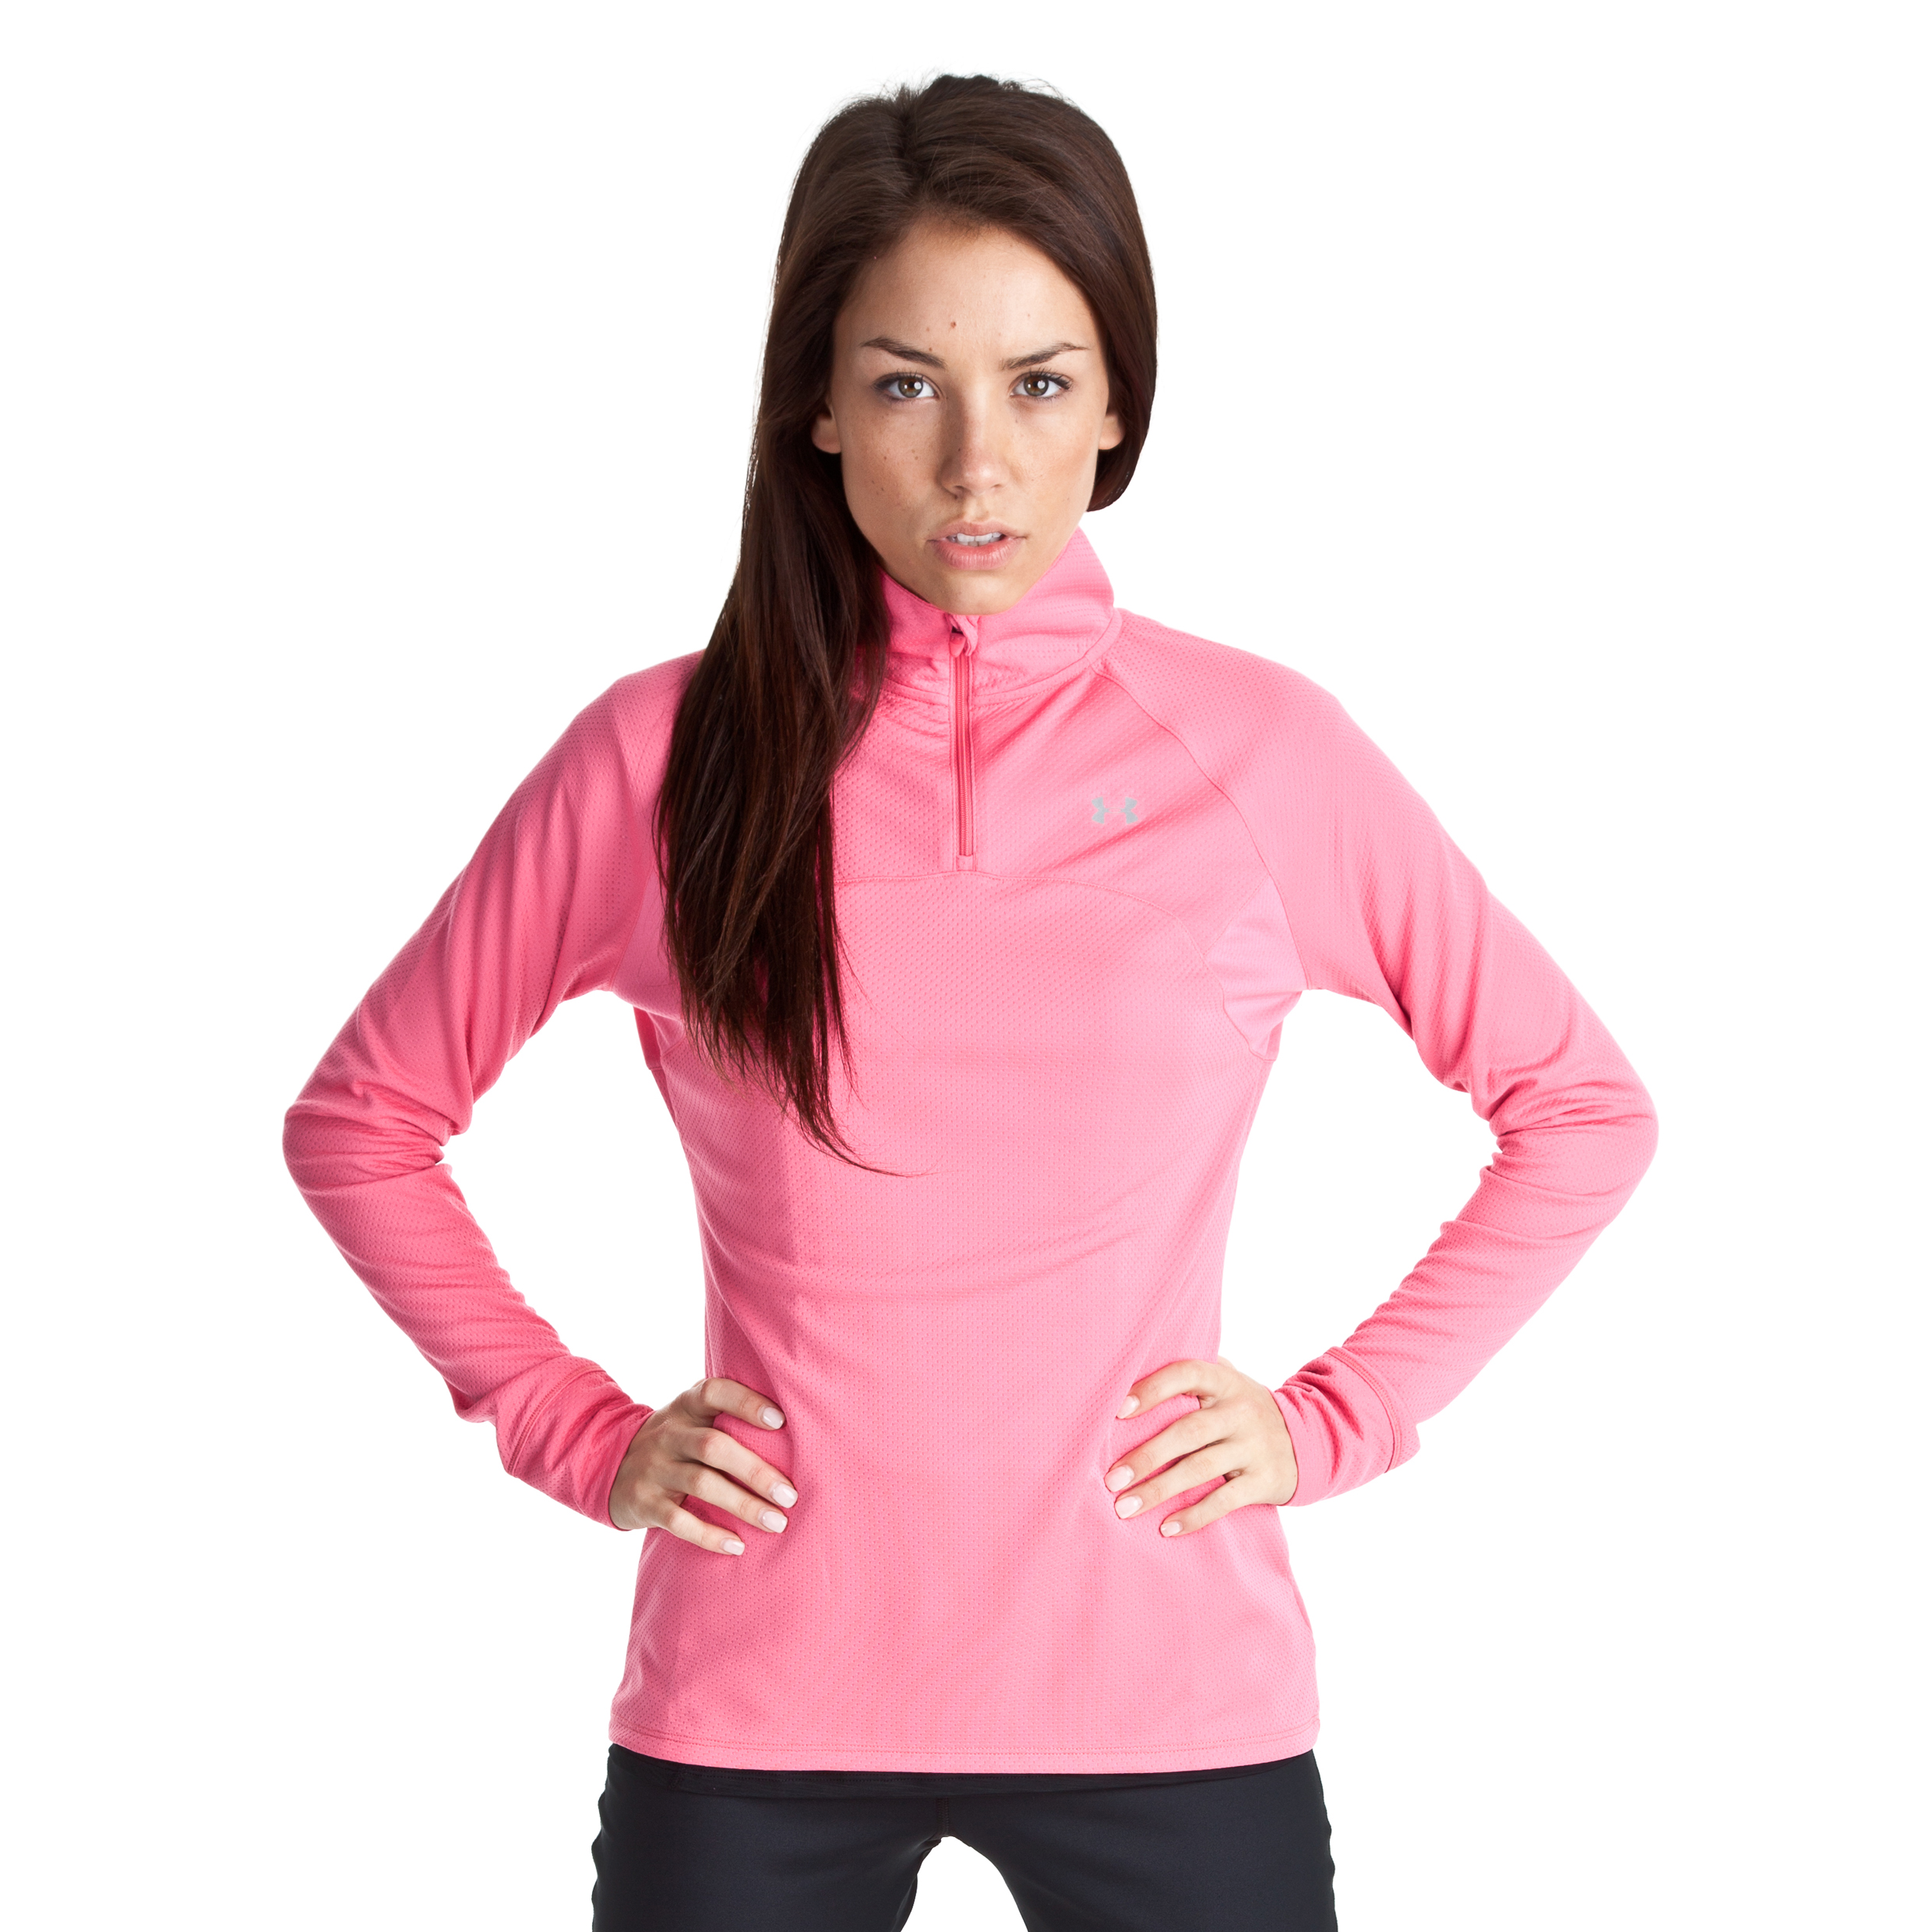 Under Armour Escape Lightweight 1/4 Zip Top II - ULT - Womens